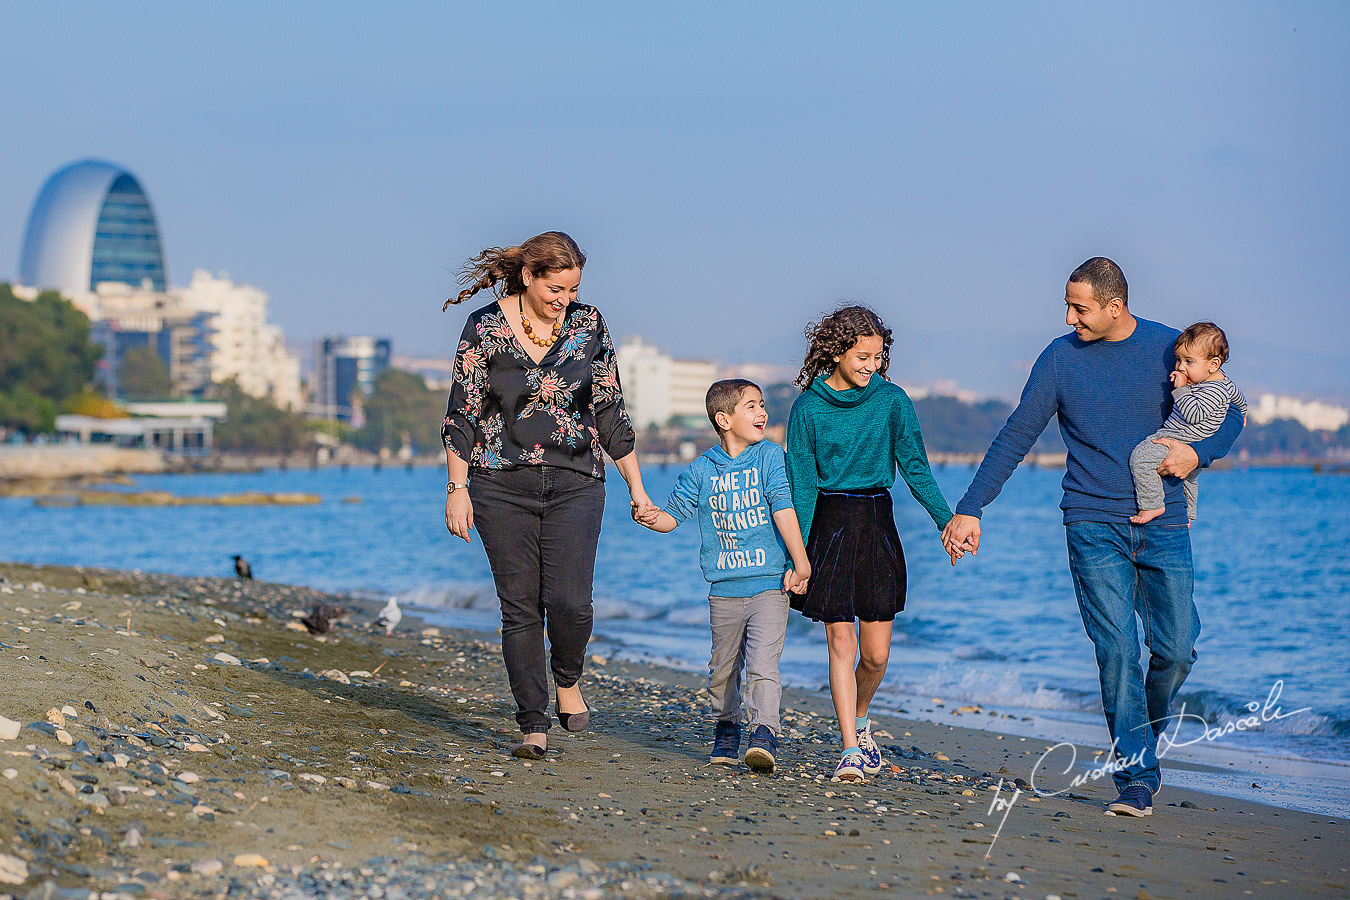 Family walking on a beach, moments captured by Cristian Dascalu during a beautiful Limassol family photography photo session.